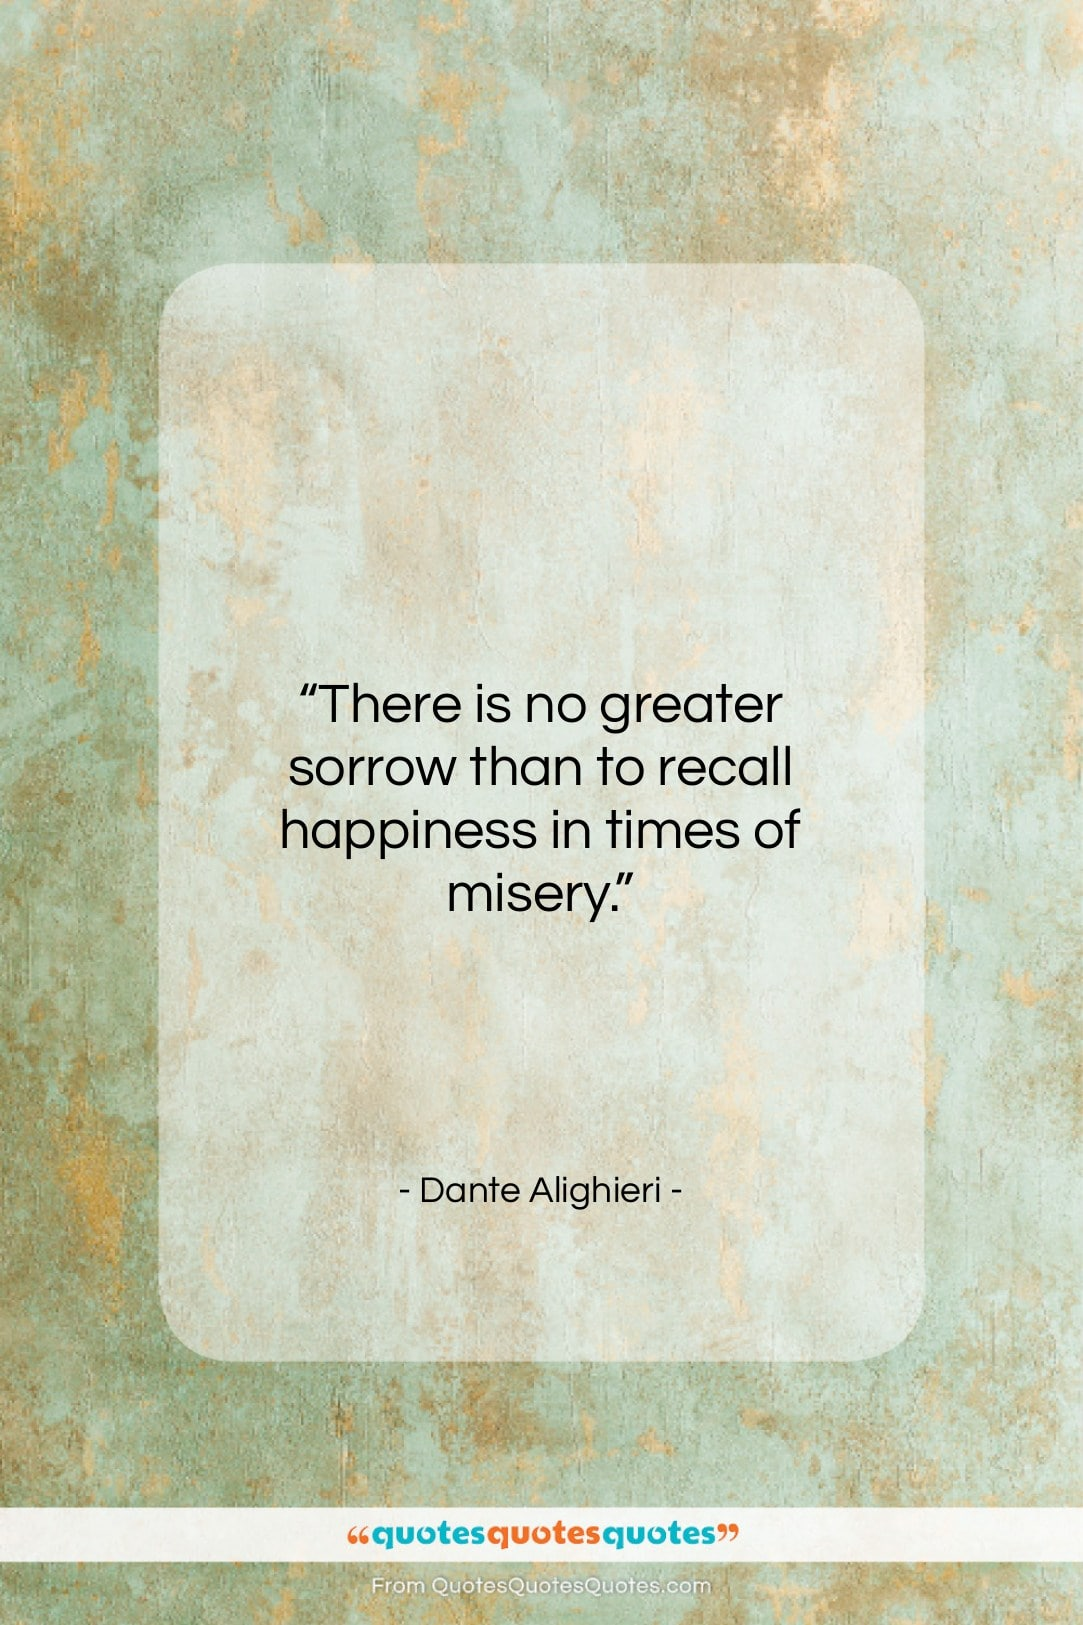 """Dante Alighieri quote: """"There is no greater sorrow than to…""""- at QuotesQuotesQuotes.com"""